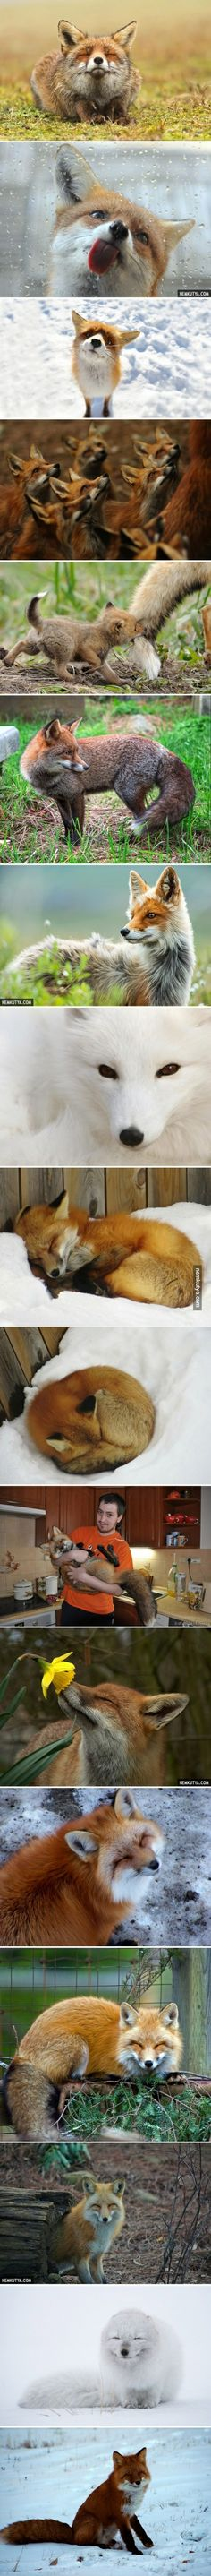 <3 little babies! How can anyone want to hunt such beautiful cute animals